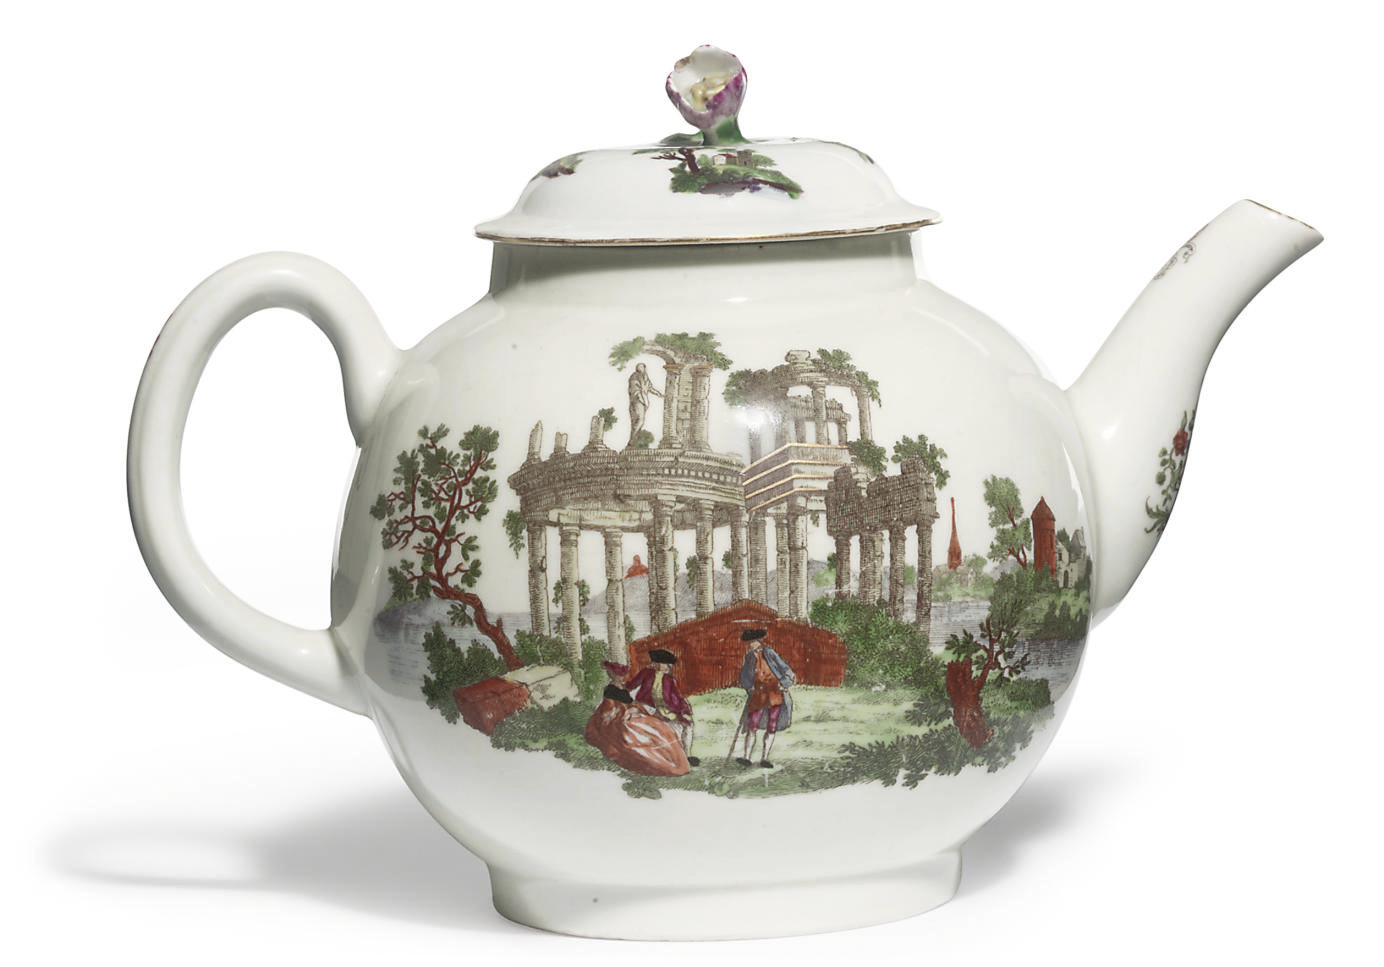 A WORCESTER GLOBULAR TEAPOT AND A COVER